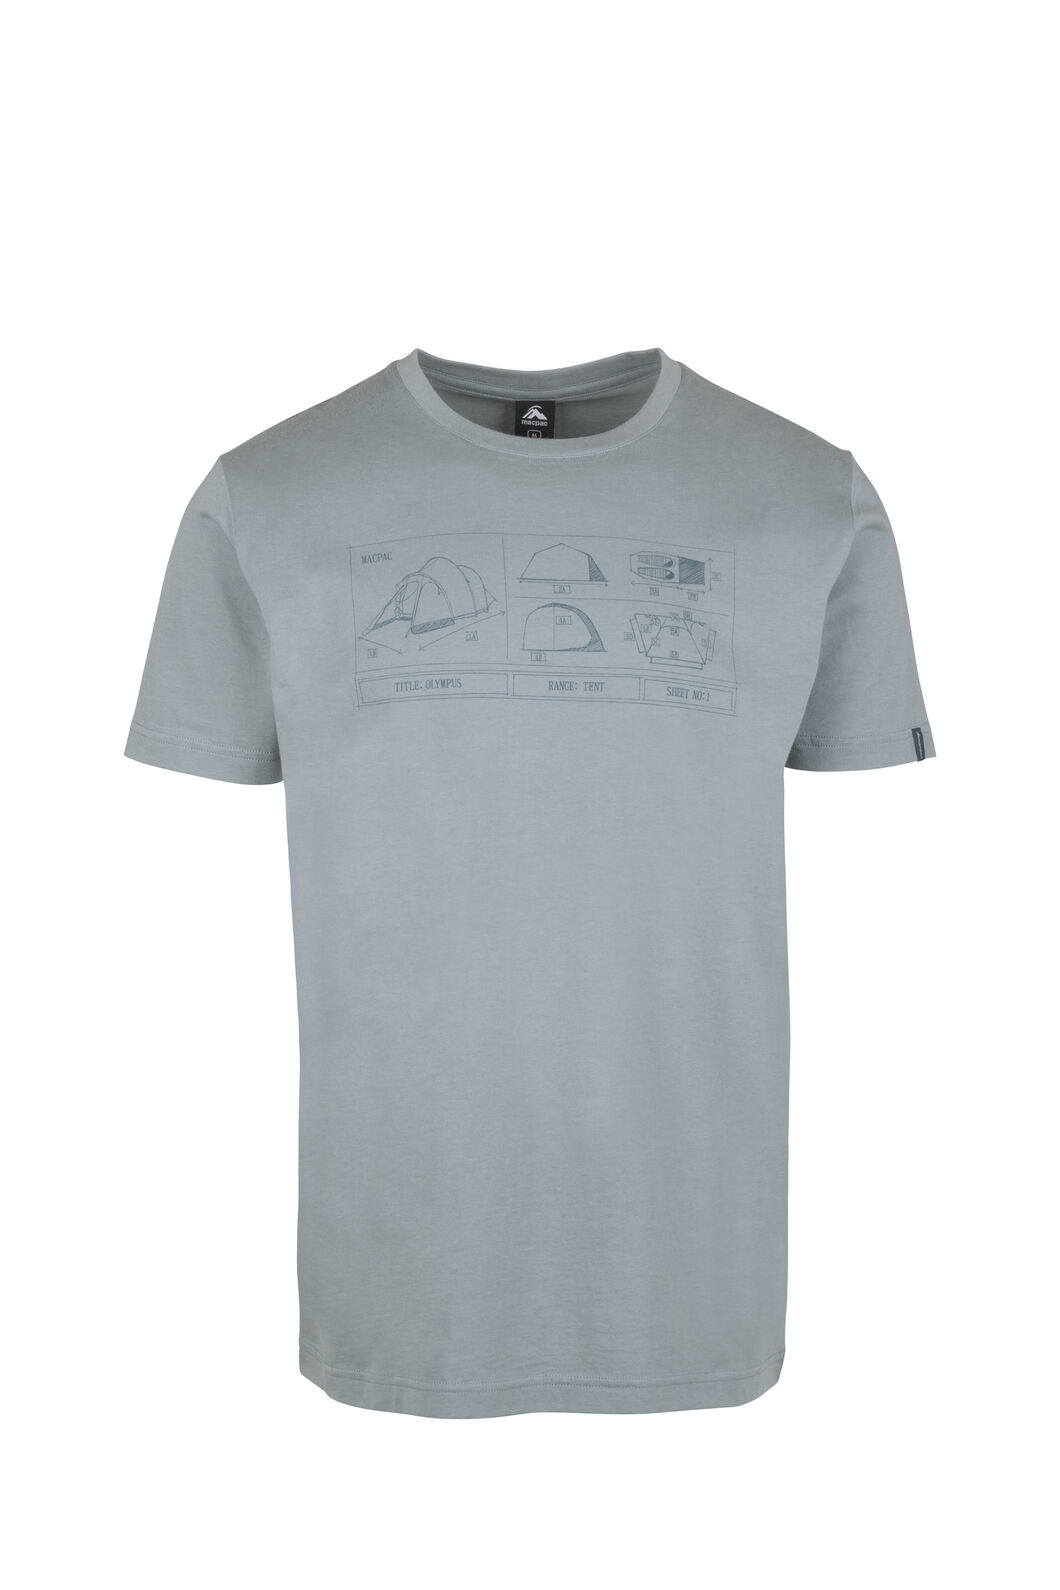 Macpac Blueprint Organic Tee - Men's, Stormy Sea, hi-res